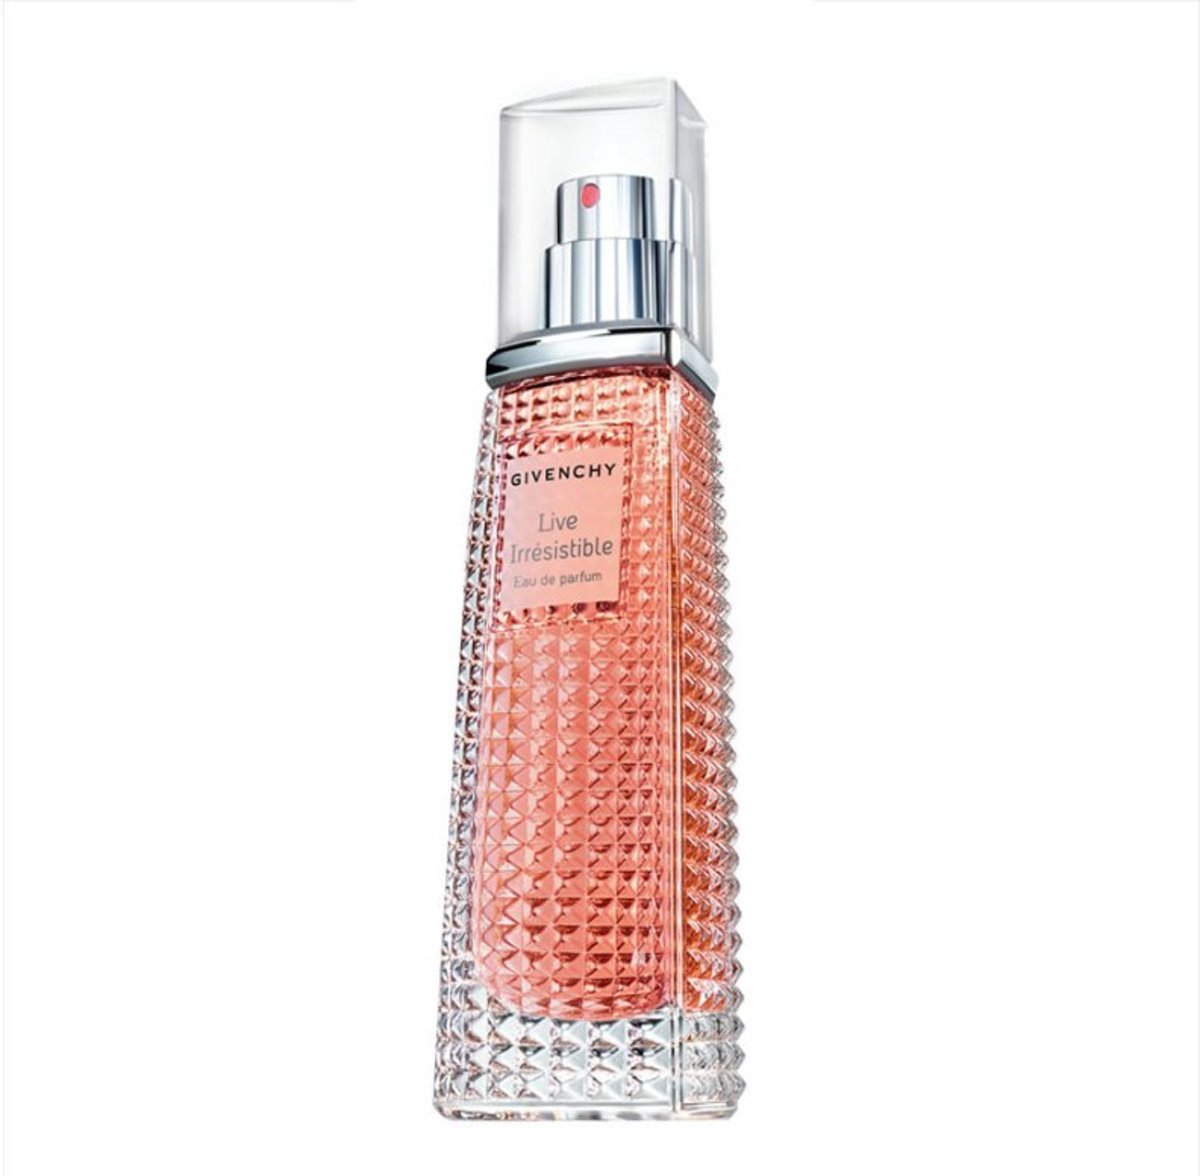 Givenchy Live Irresistible Edp Spray 30 ml